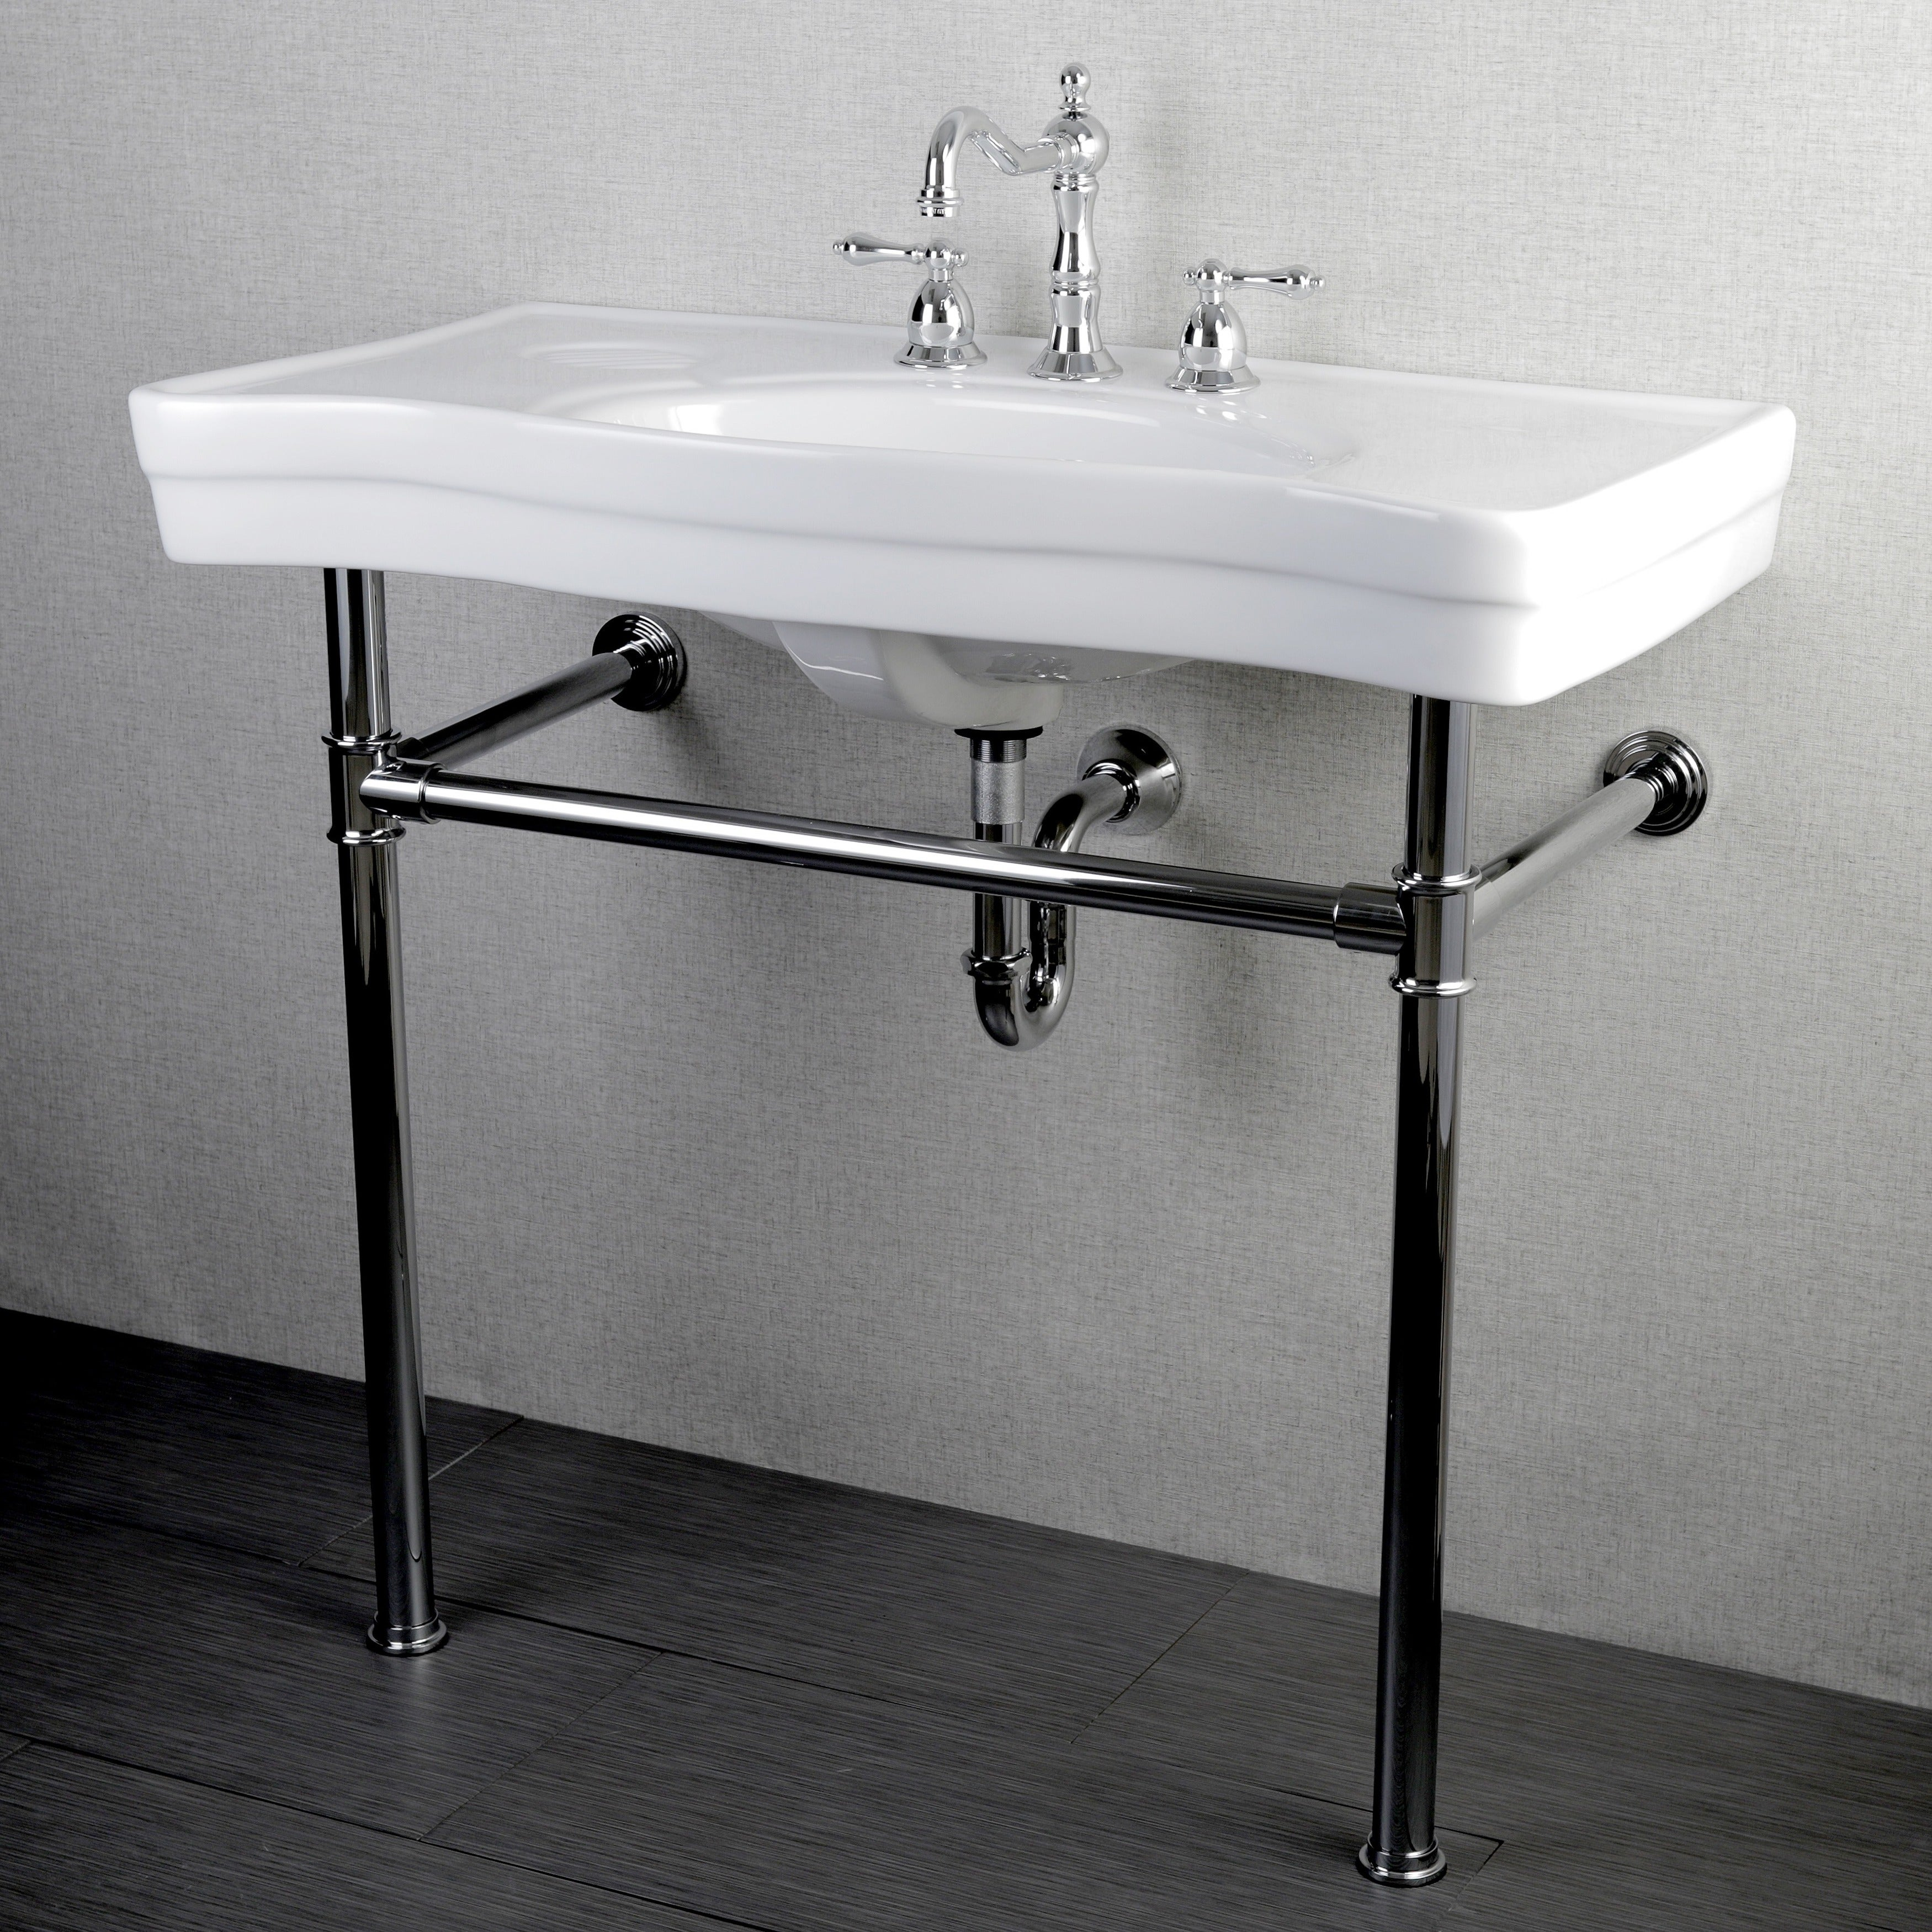 Buy 5 11 Inch Bathroom Sinks Online At Overstock Our Best Sinks